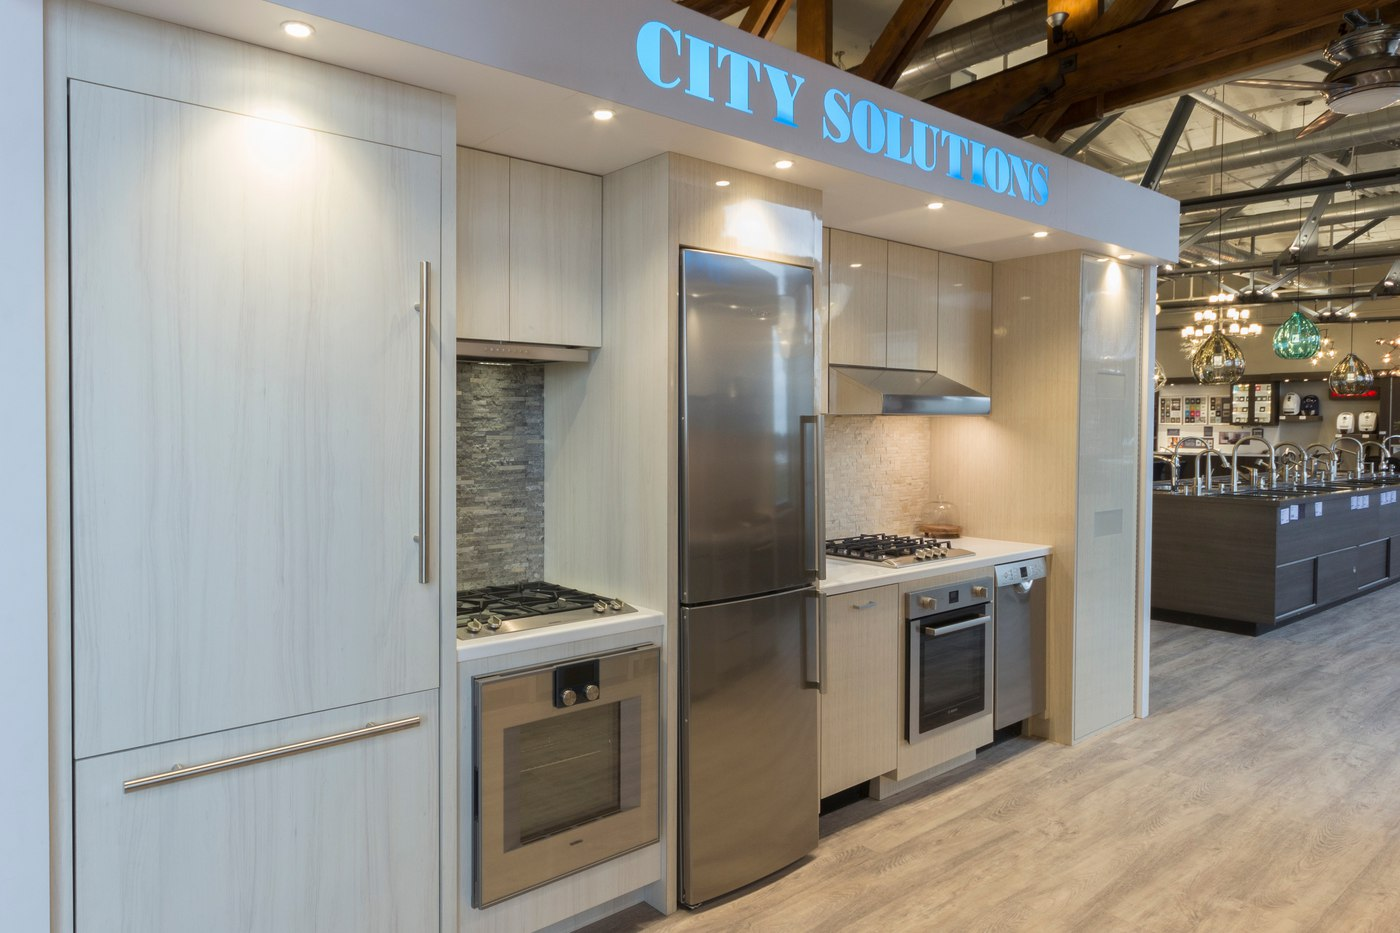 Yale-Appliance-City-Solutions